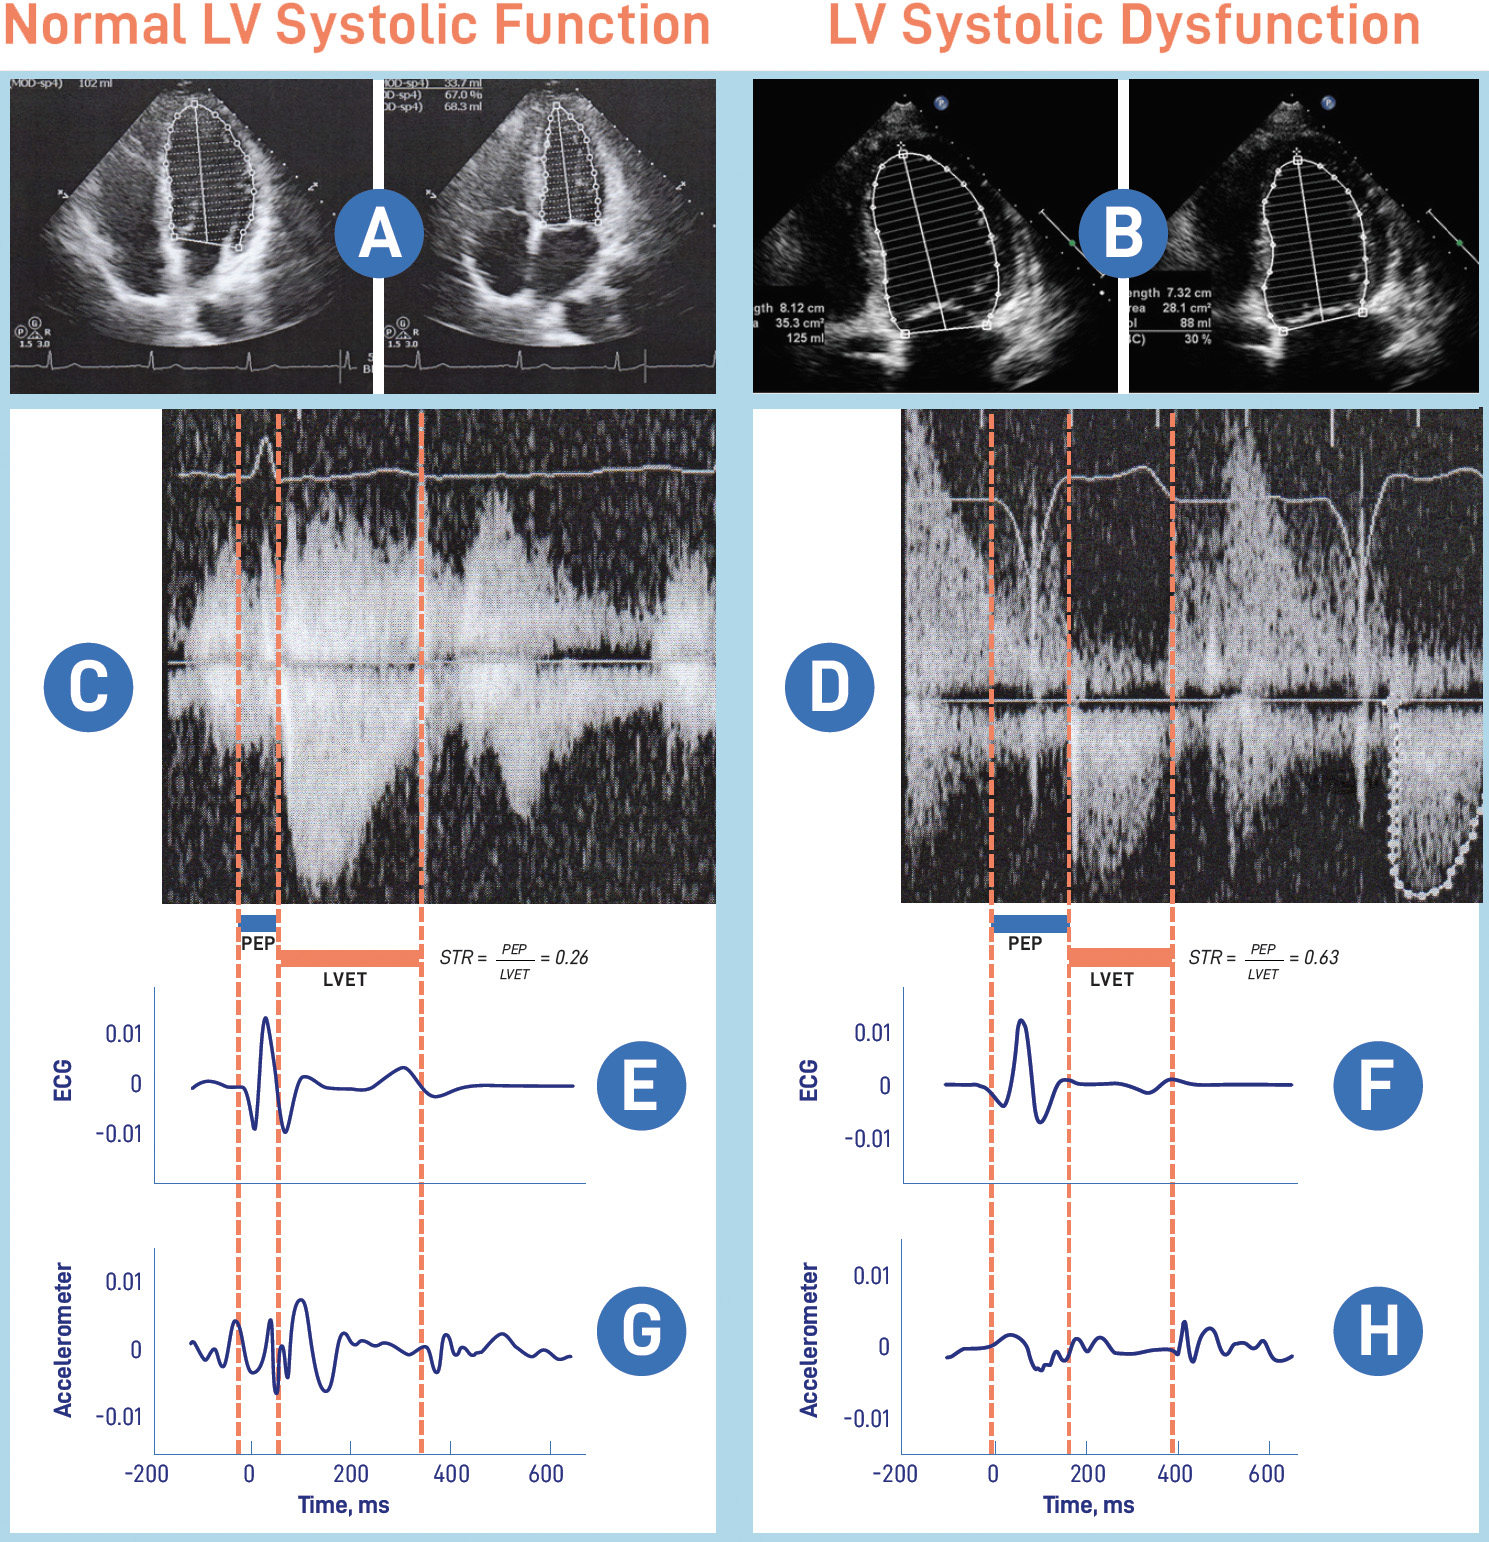 Cardiac time intervals can identify left ventricular systolic dysfunction (LVSD) in patients.